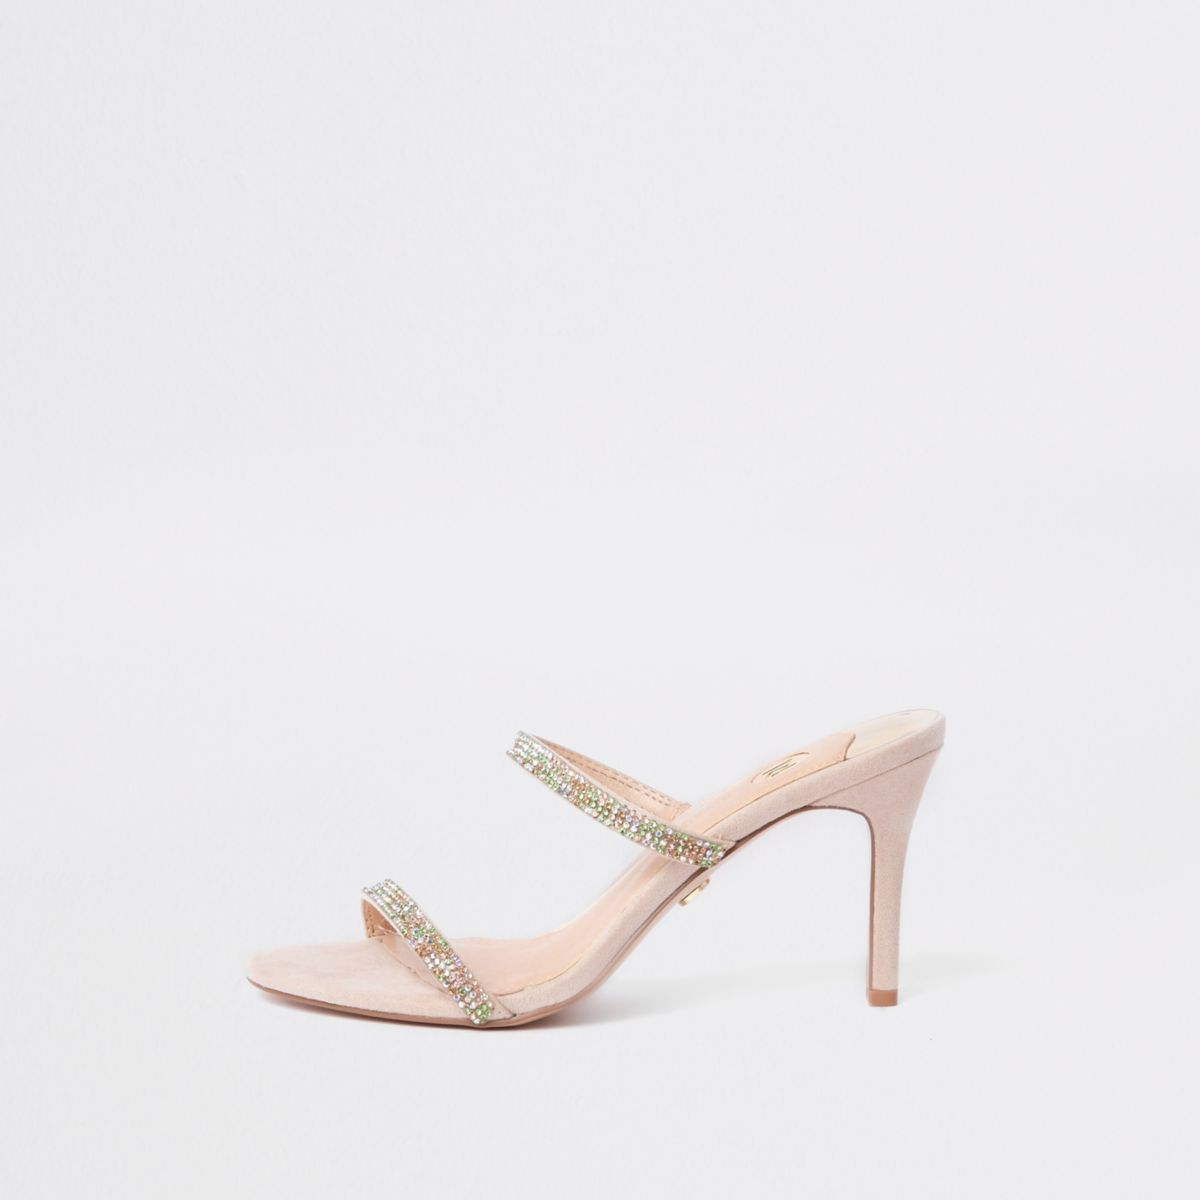 Light pink barely there slip on stiletto mule